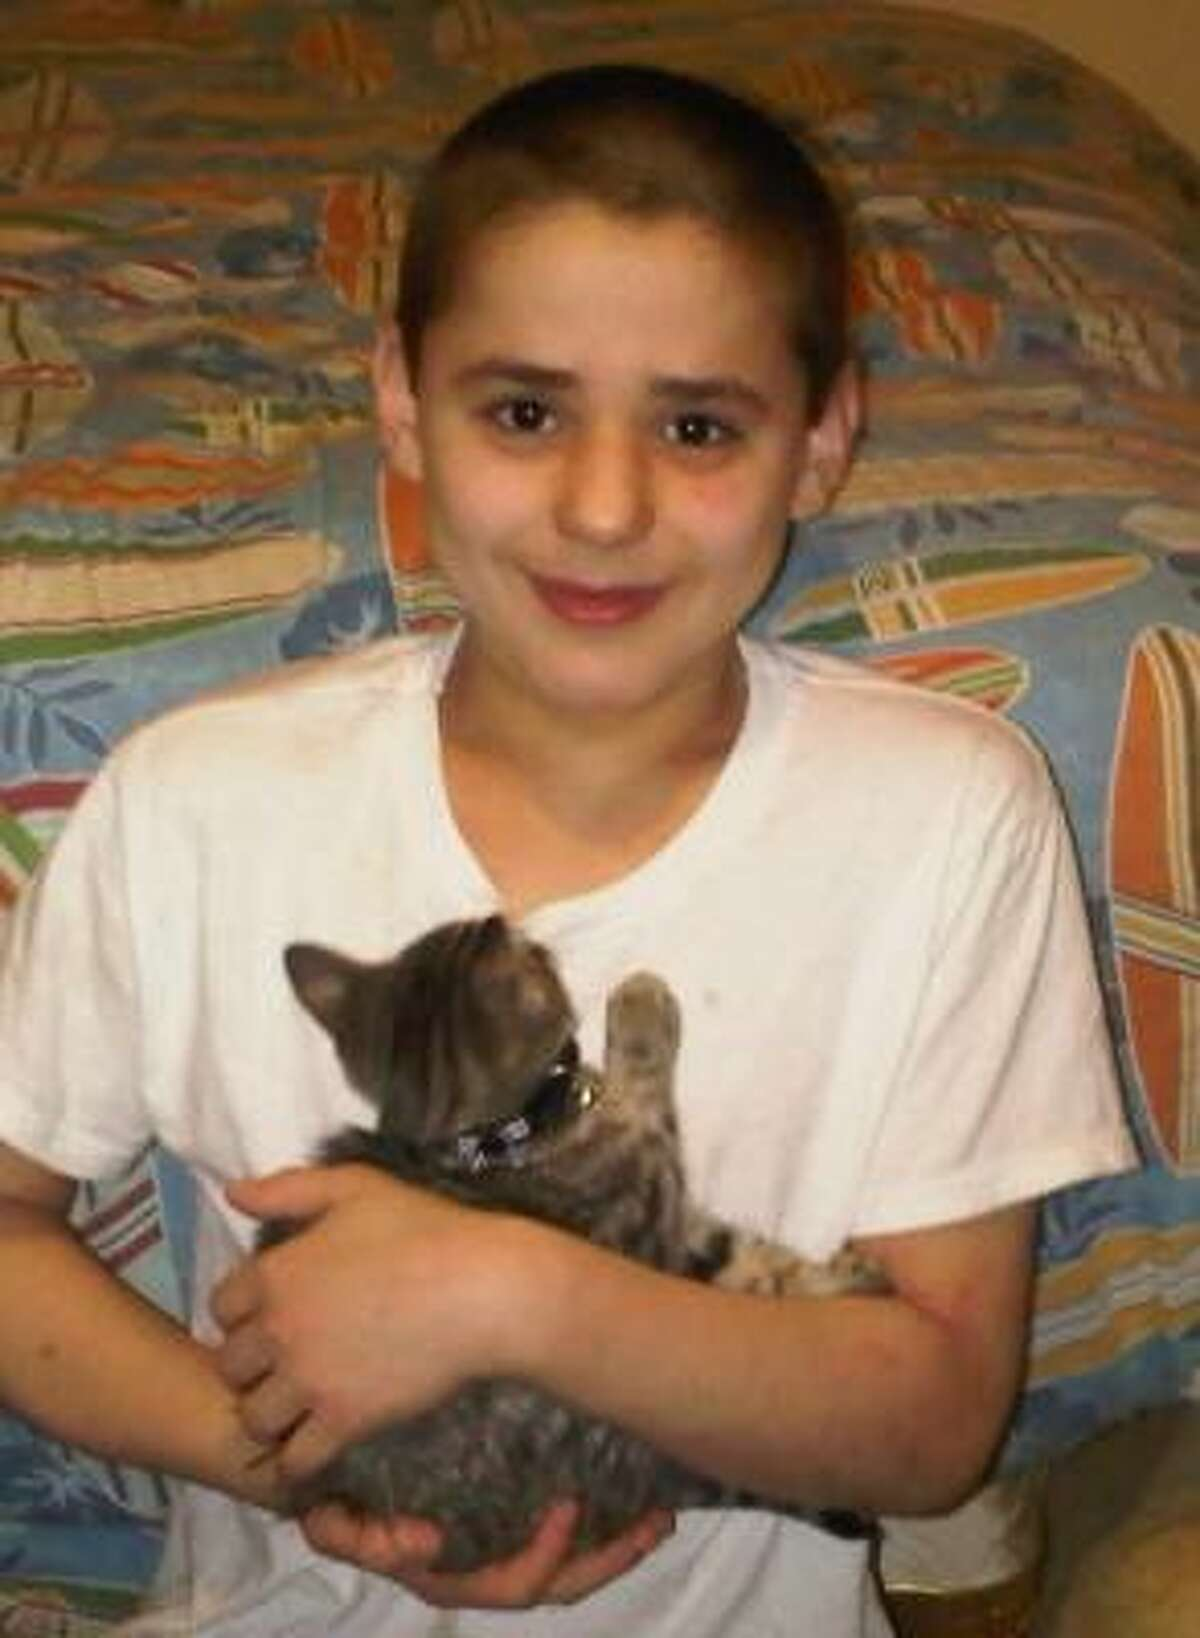 Asher Brown, 13, killed himself at home in Cypress on Thursday, Sept. 23, 2010.